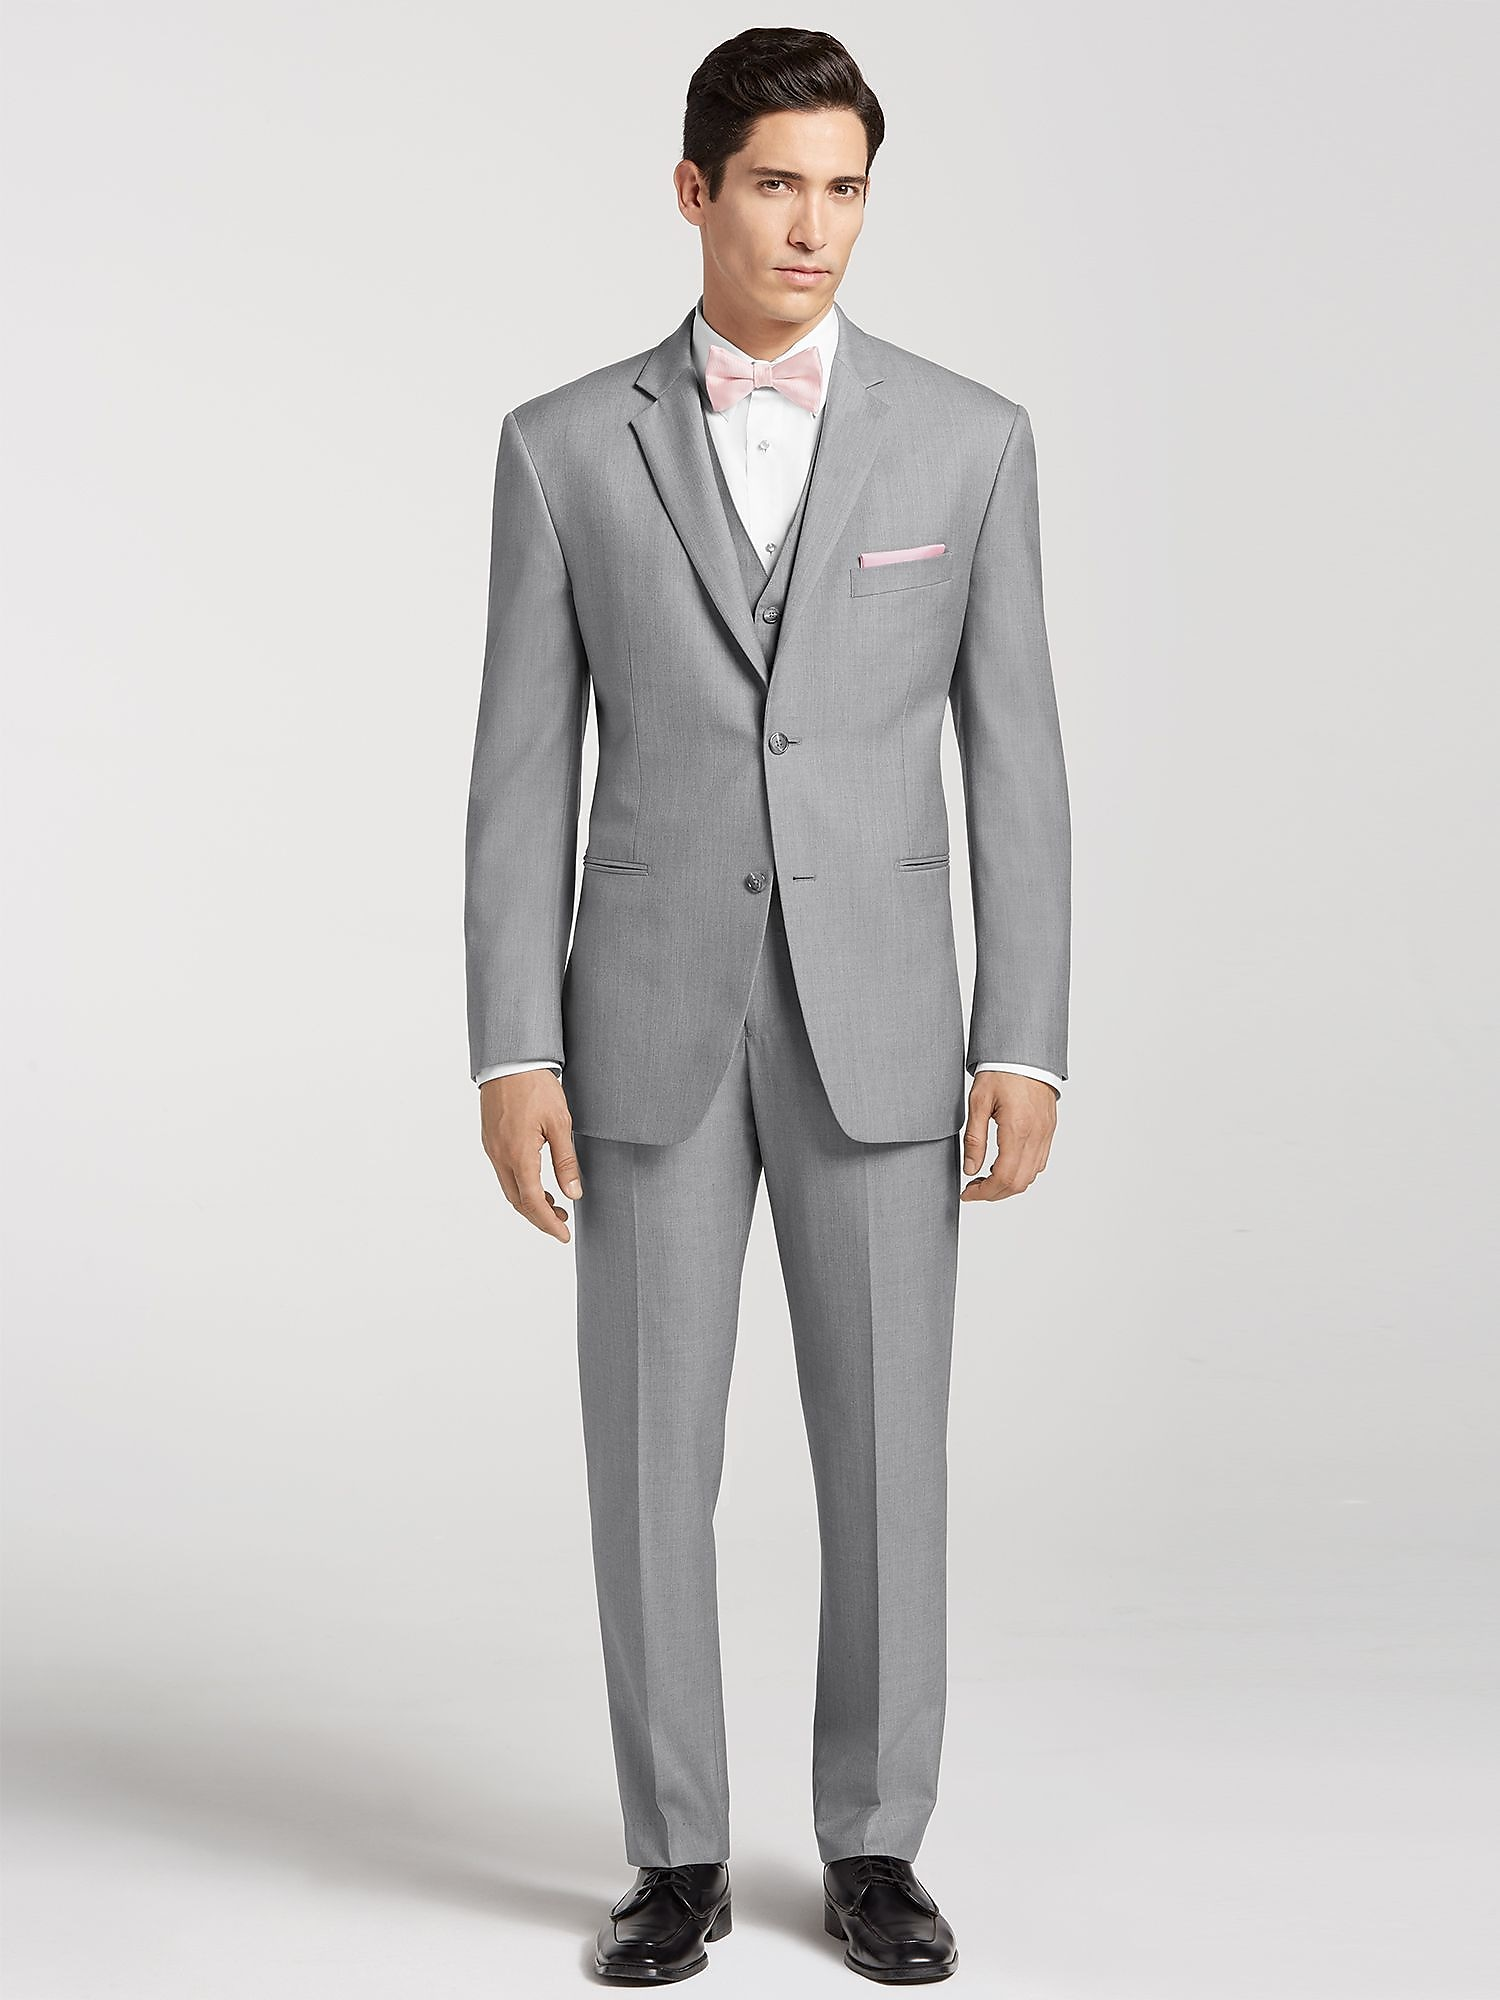 Vintage Men's Gray Suit by Pronto Uomo | Suit Rental | Men's Wearhouse